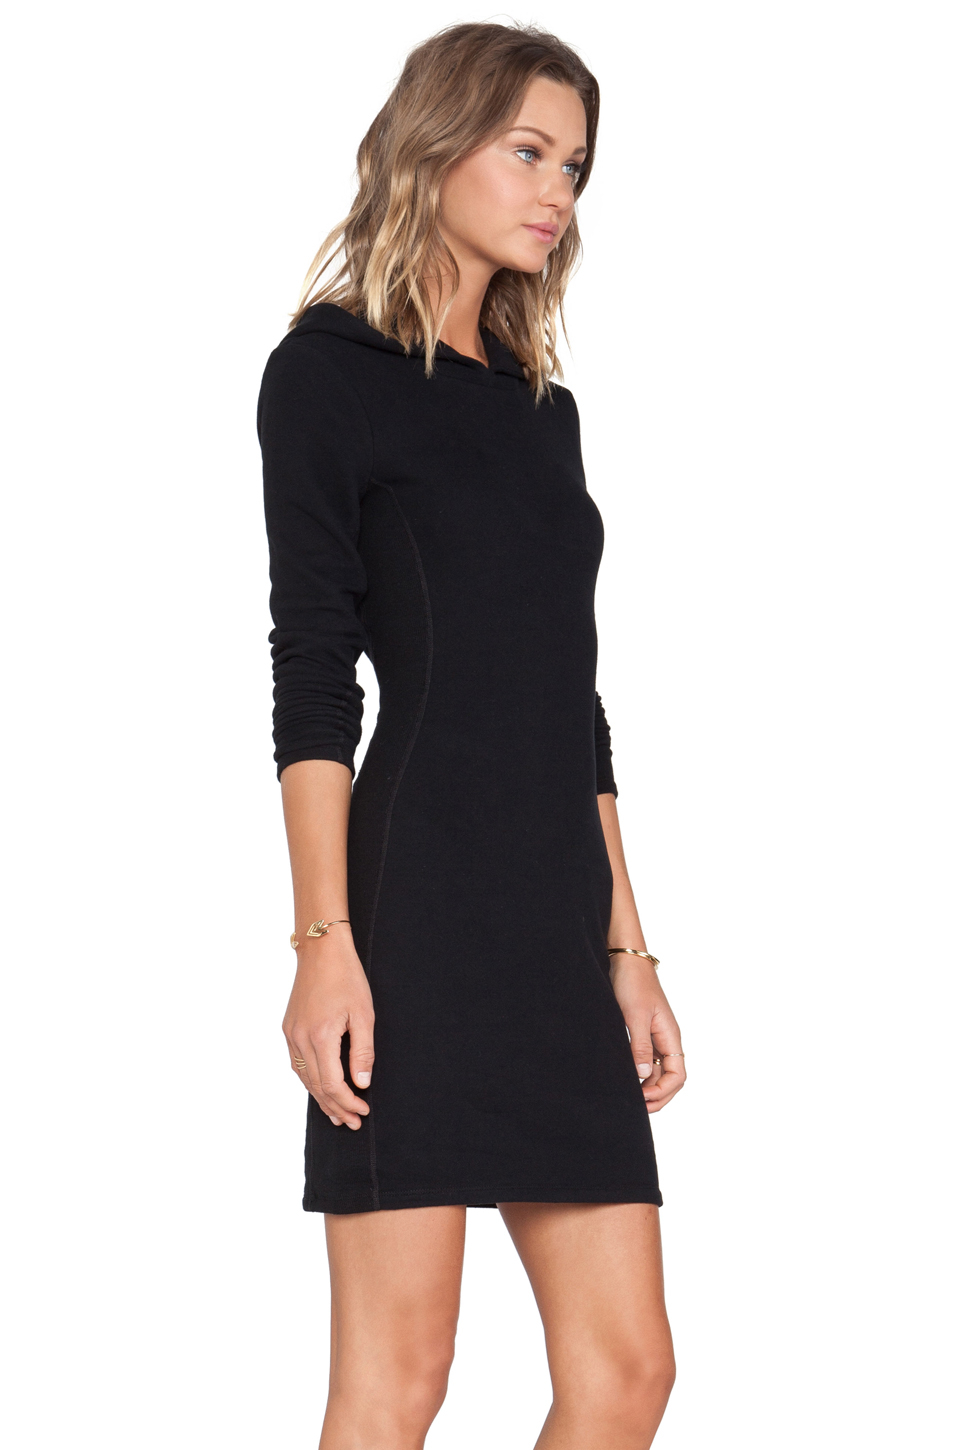 Find hooded dress at ShopStyle. Shop the latest collection of hooded dress from the most popular stores - all in one place.